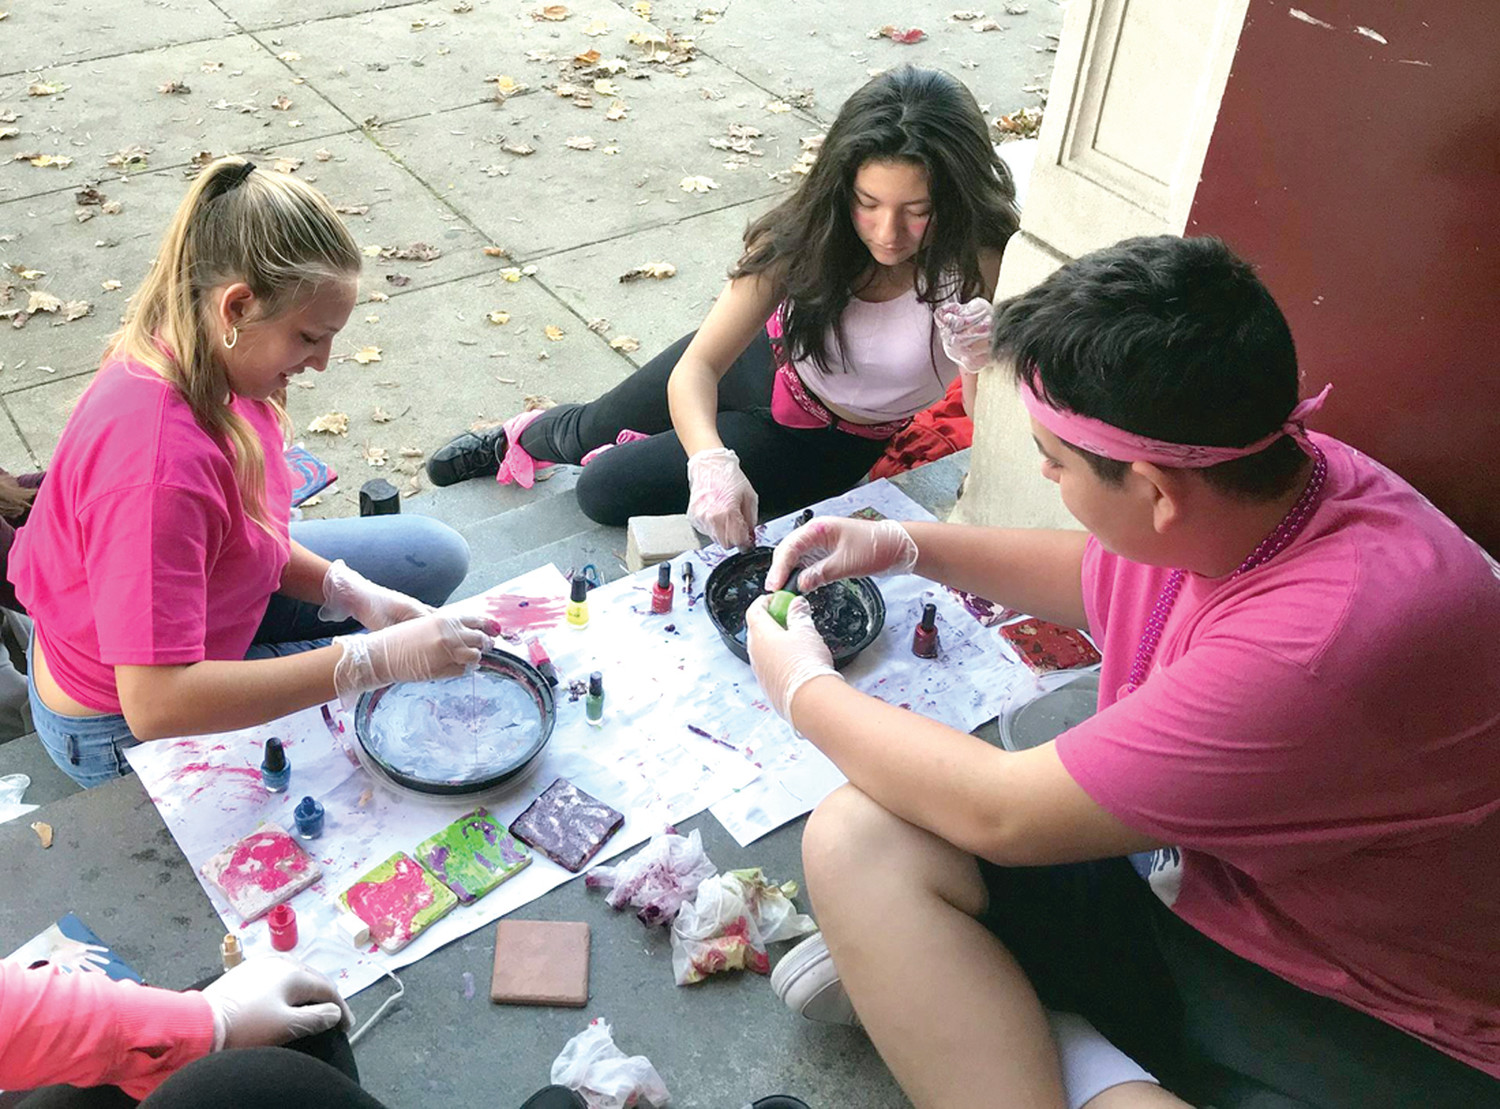 WORKING TOGETHER: The students at Hugh B. Bain Middle School have been working diligently on crafts and items which can be sold at the upcoming Winter Carnivale on December 1.